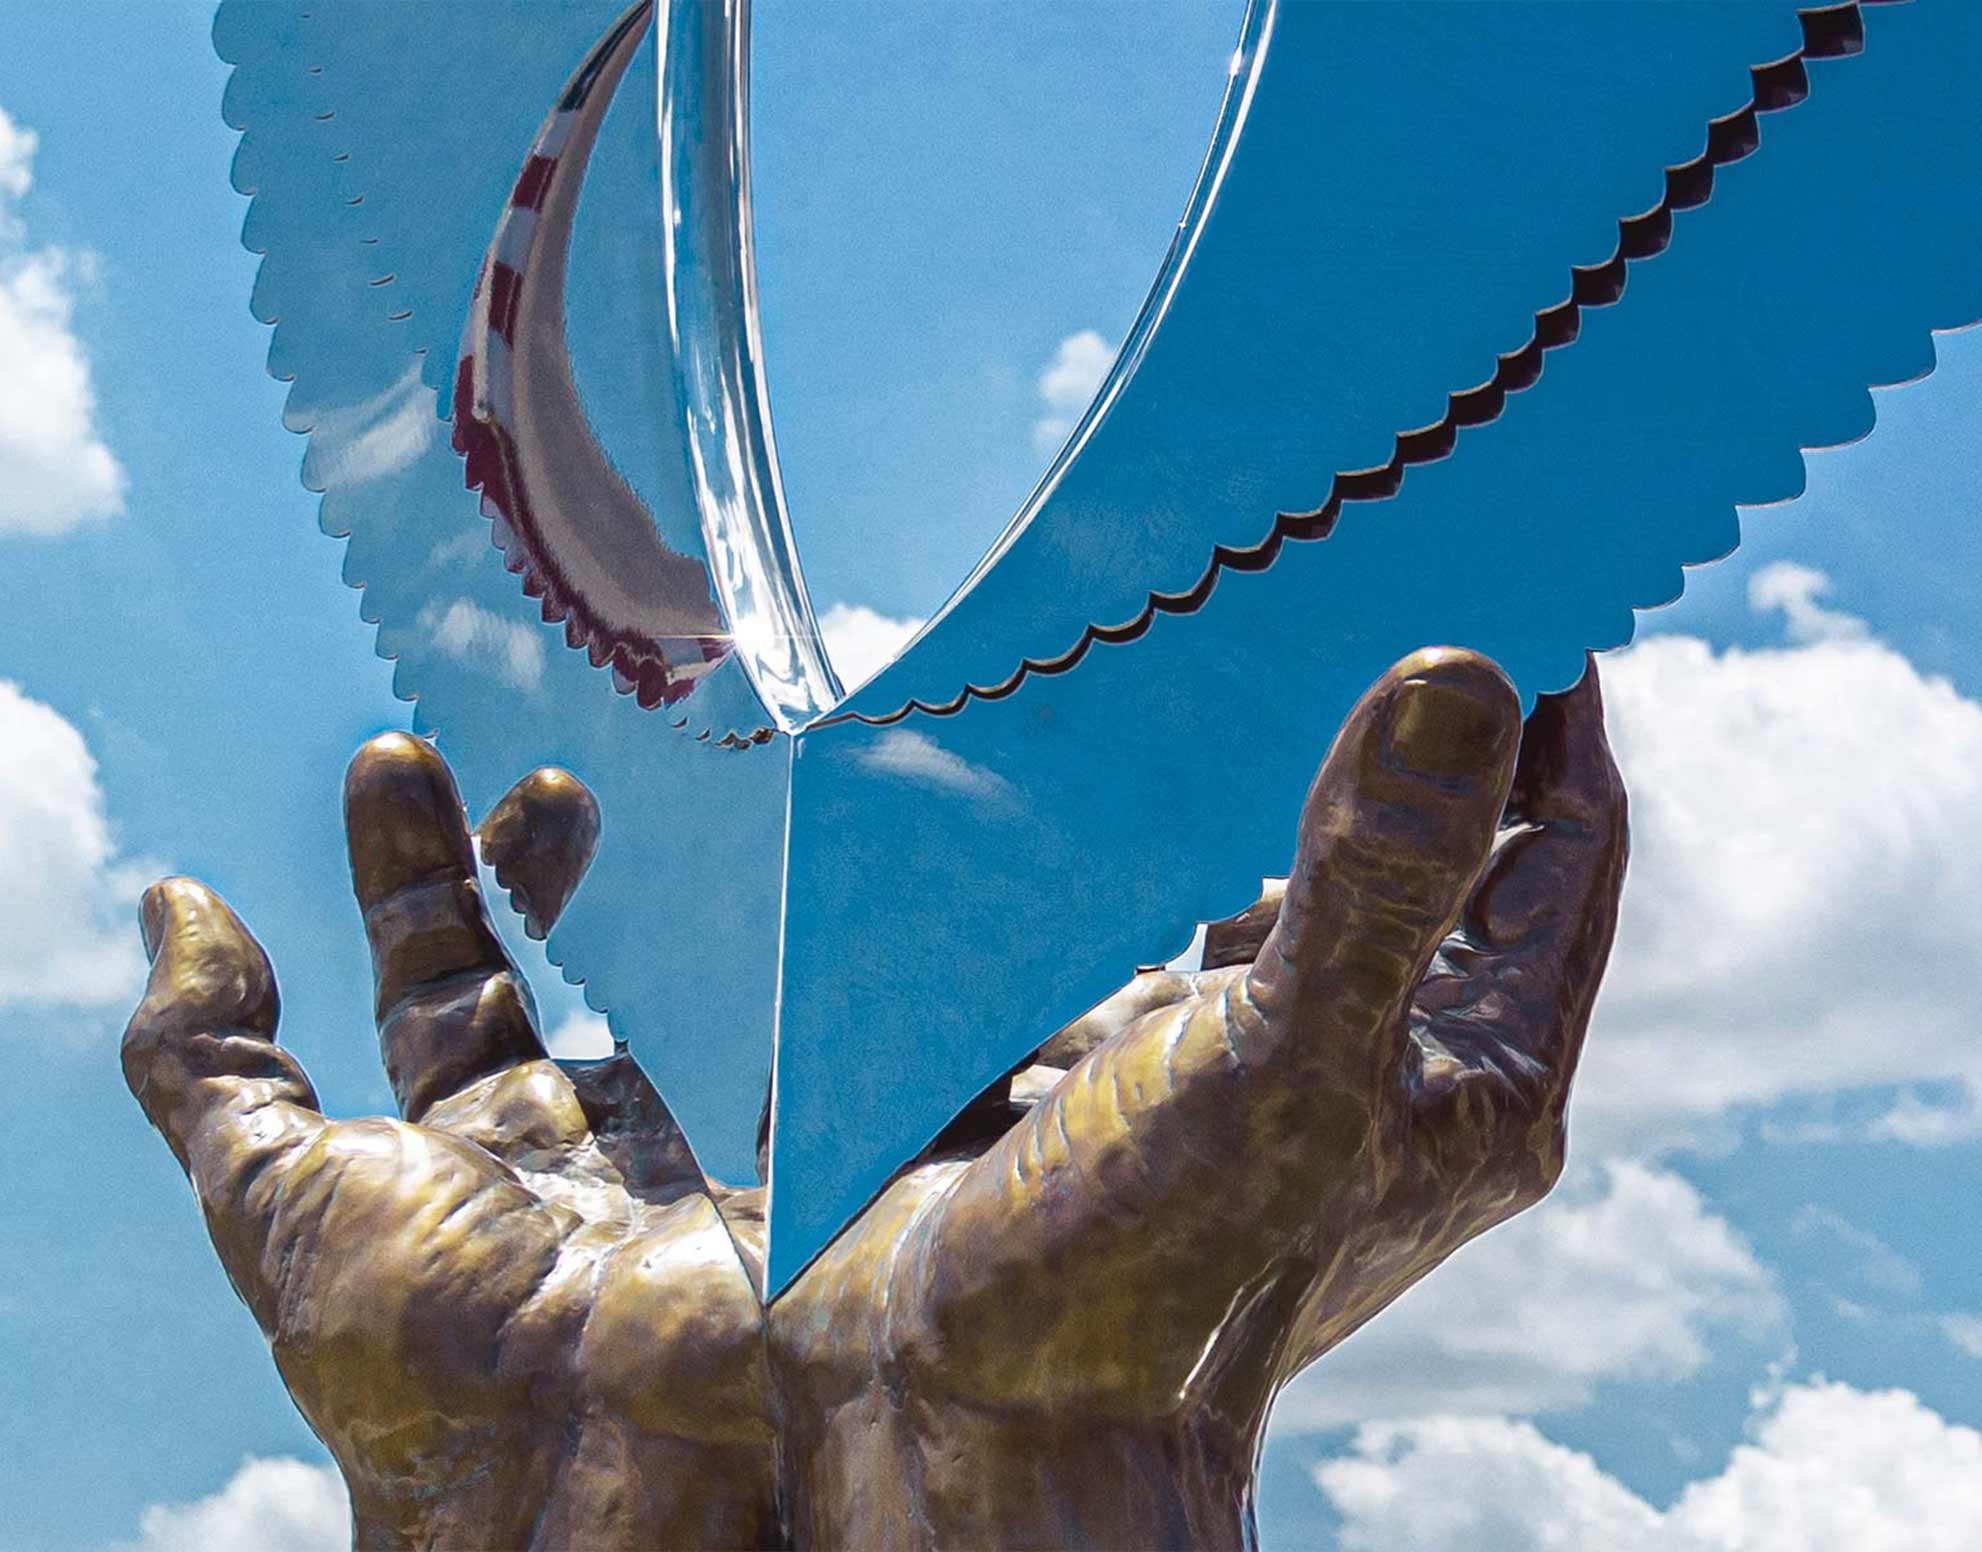 wings of hope, hands of healing sculpture